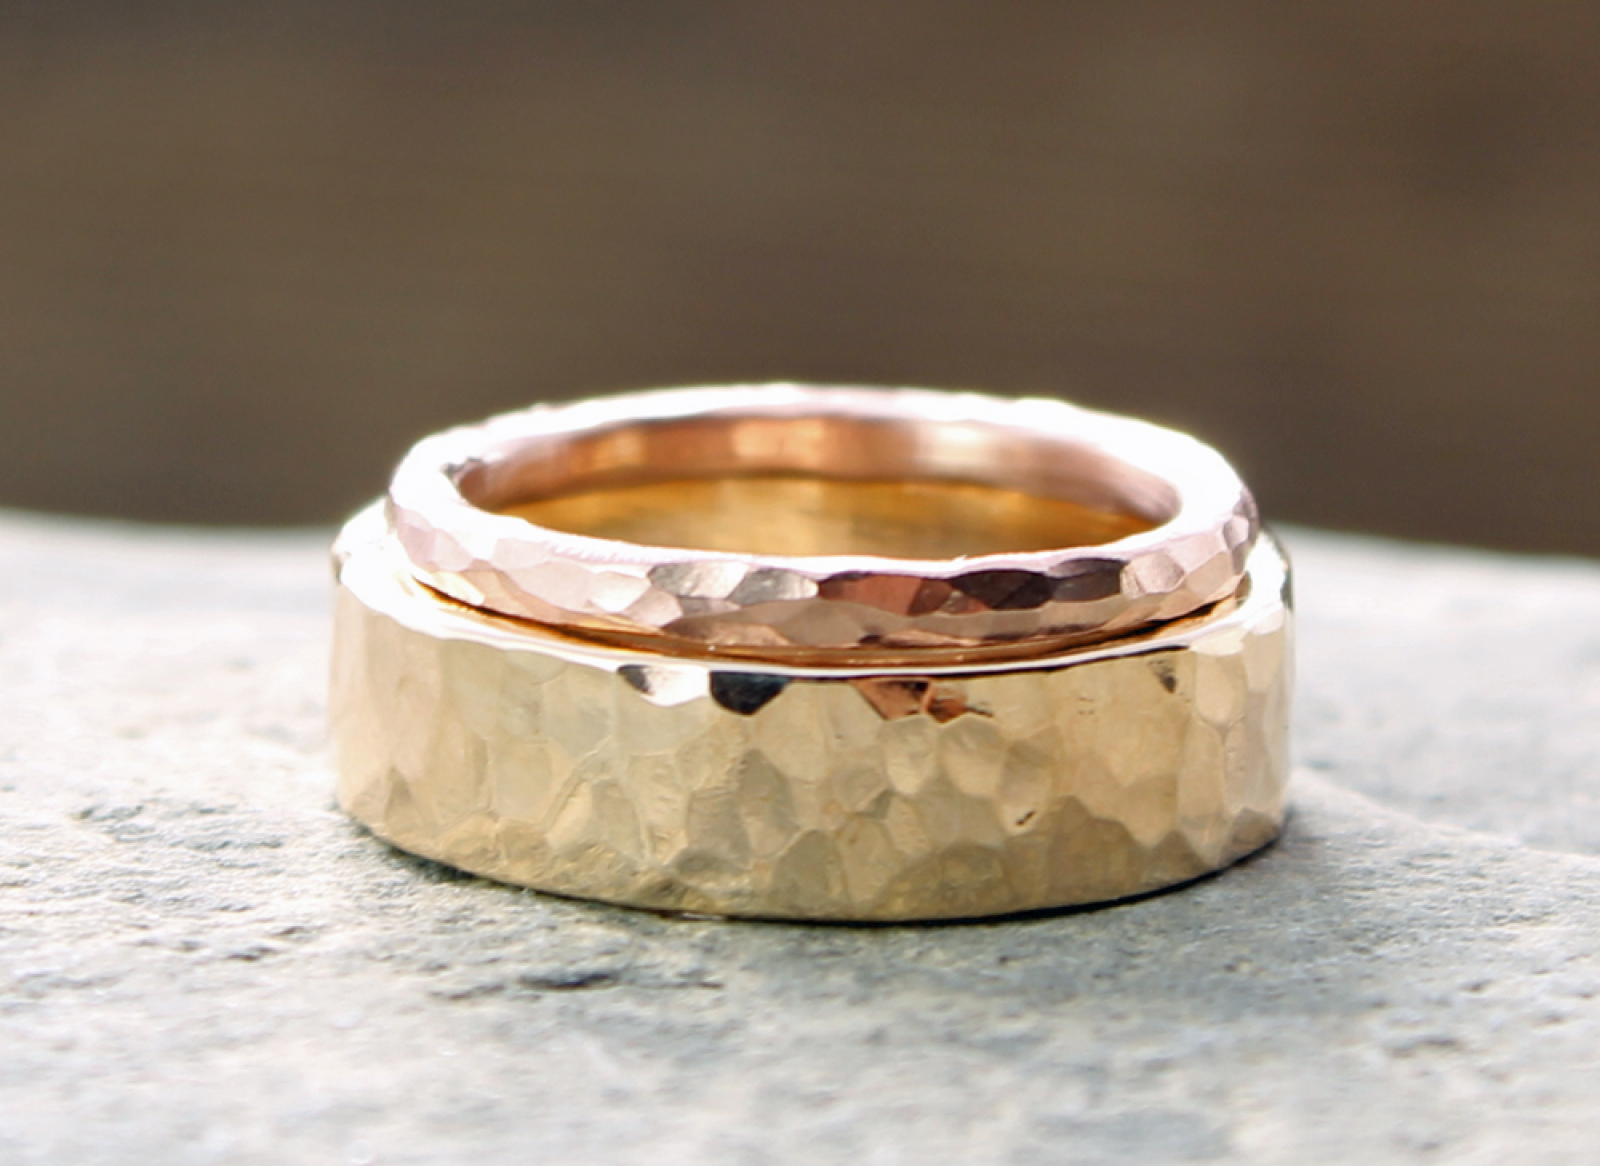 His Hers Custom 14k Yellow And Rose Gold Hammered Wedding Band Set Spiral River Jewelry